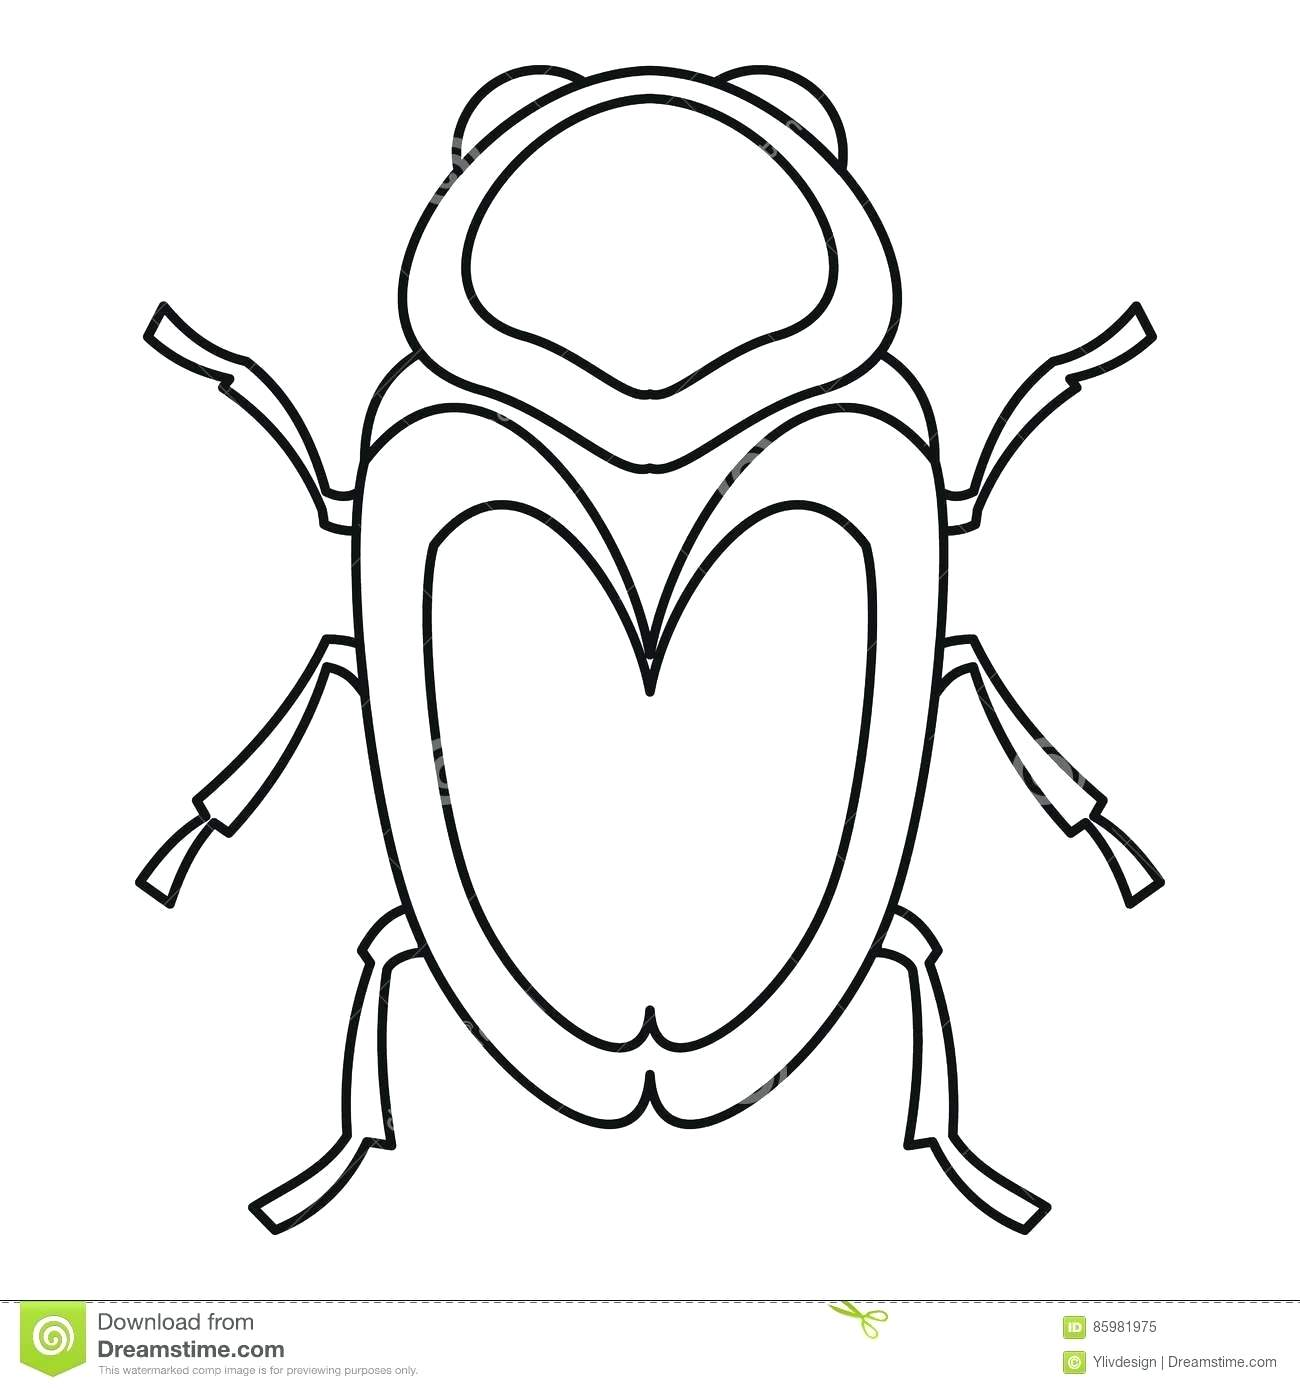 1300x1390 Coloring Pages Outstanding Bug Outline. Ladybug Outline Drawing